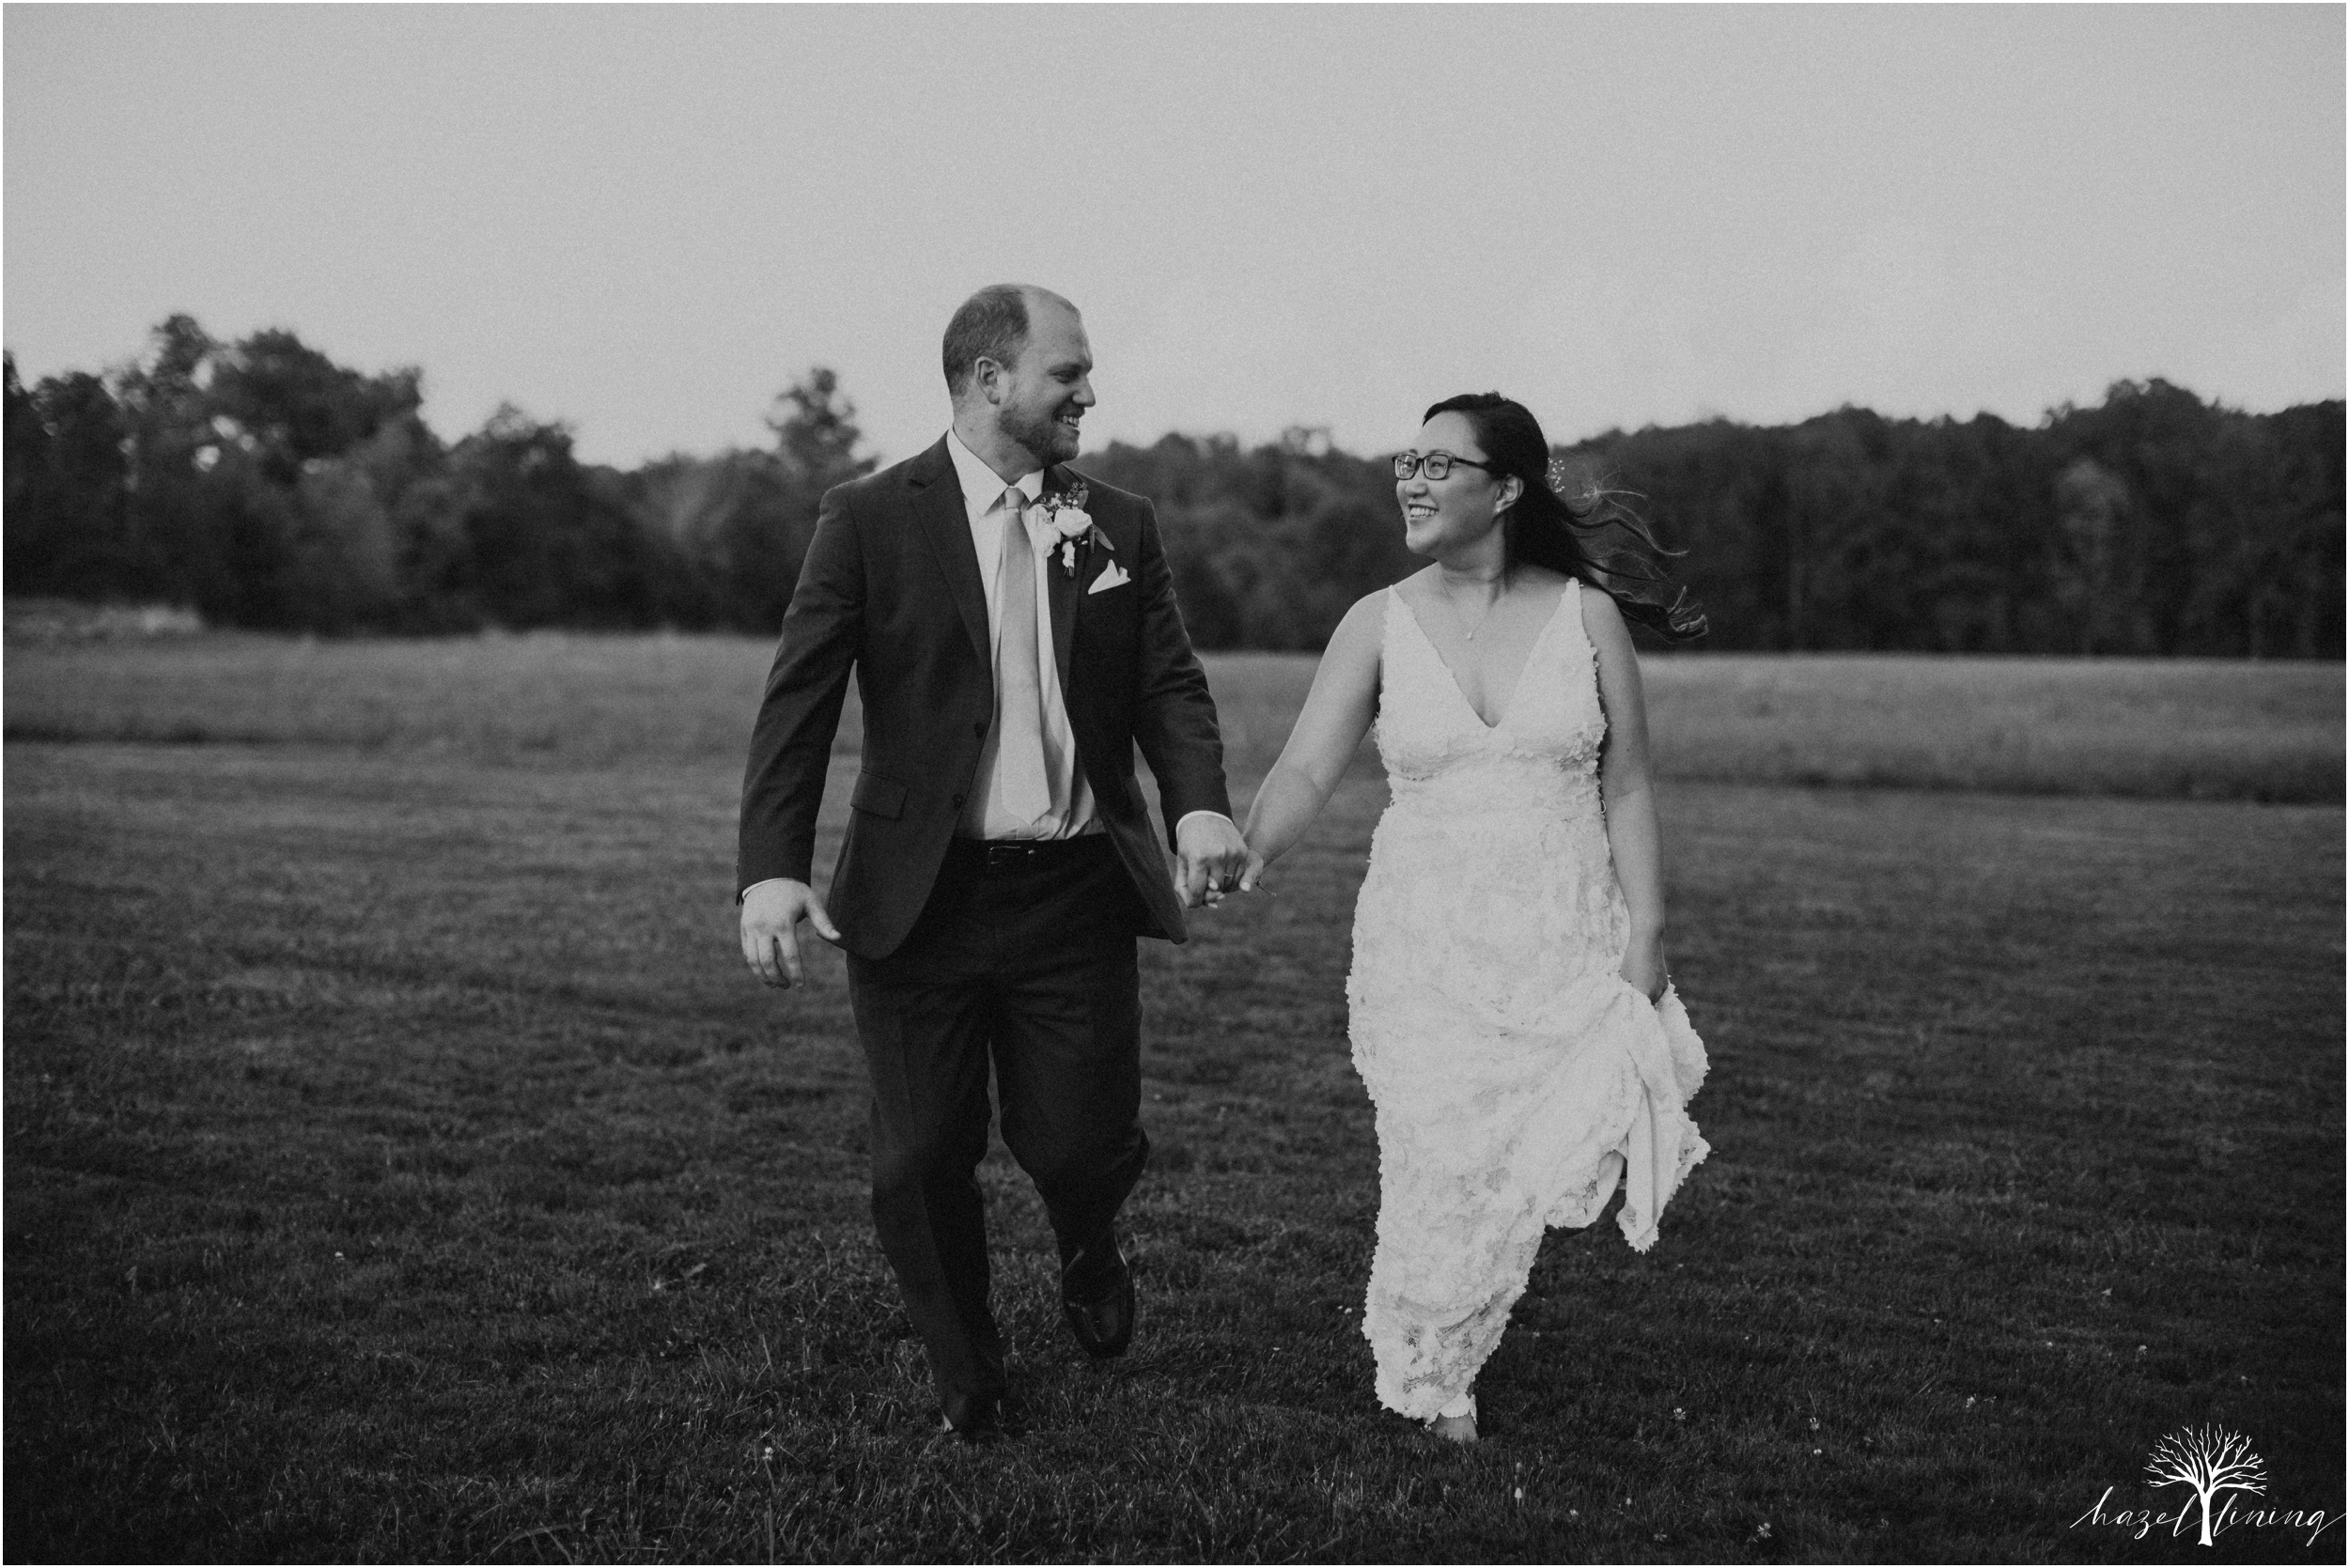 jason-tercha-laura-caruso-the-farm-bakery-and-events-quakertown-pa-summer-wedding-hazel-lining-photography-destination-elopement-wedding-engagement-photography_0134.jpg